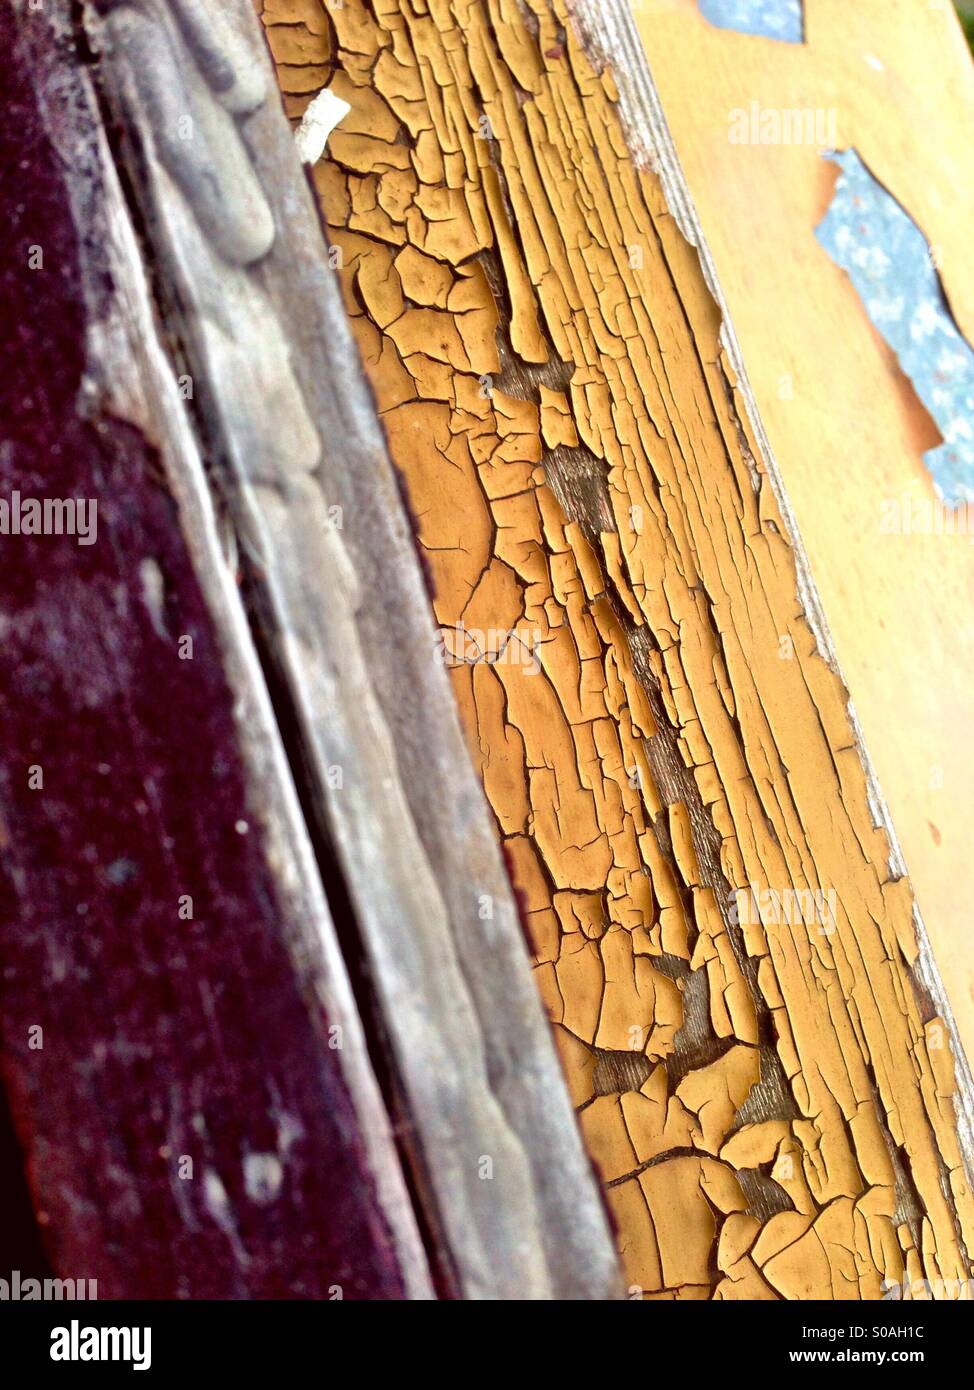 The tell-tale signs of age on a windowpane with chipped and cracking weathered paint Stock Photo